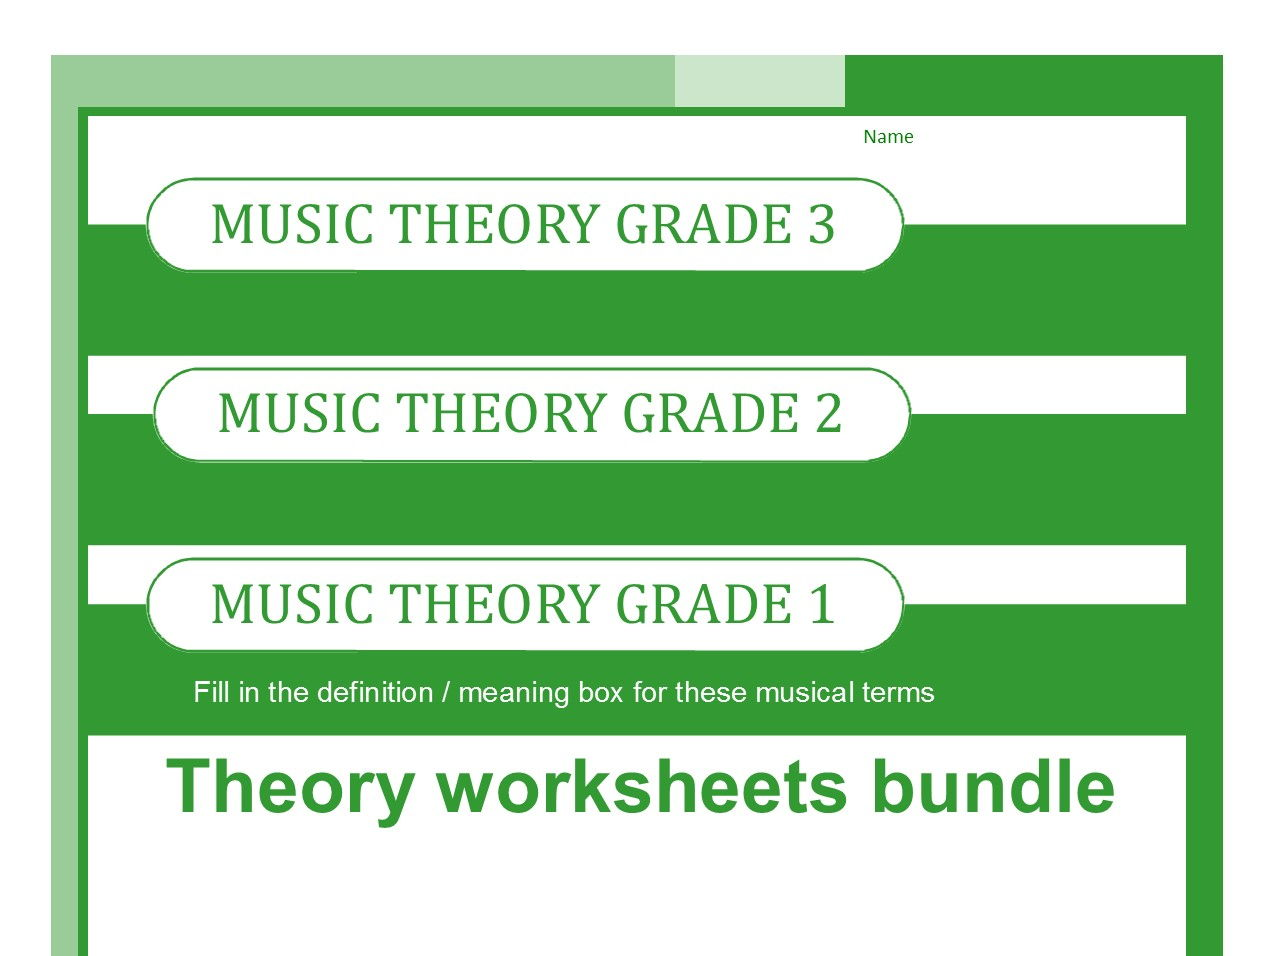 Music Theory Worksheets For Grades One Two And Three By Sparkhallo